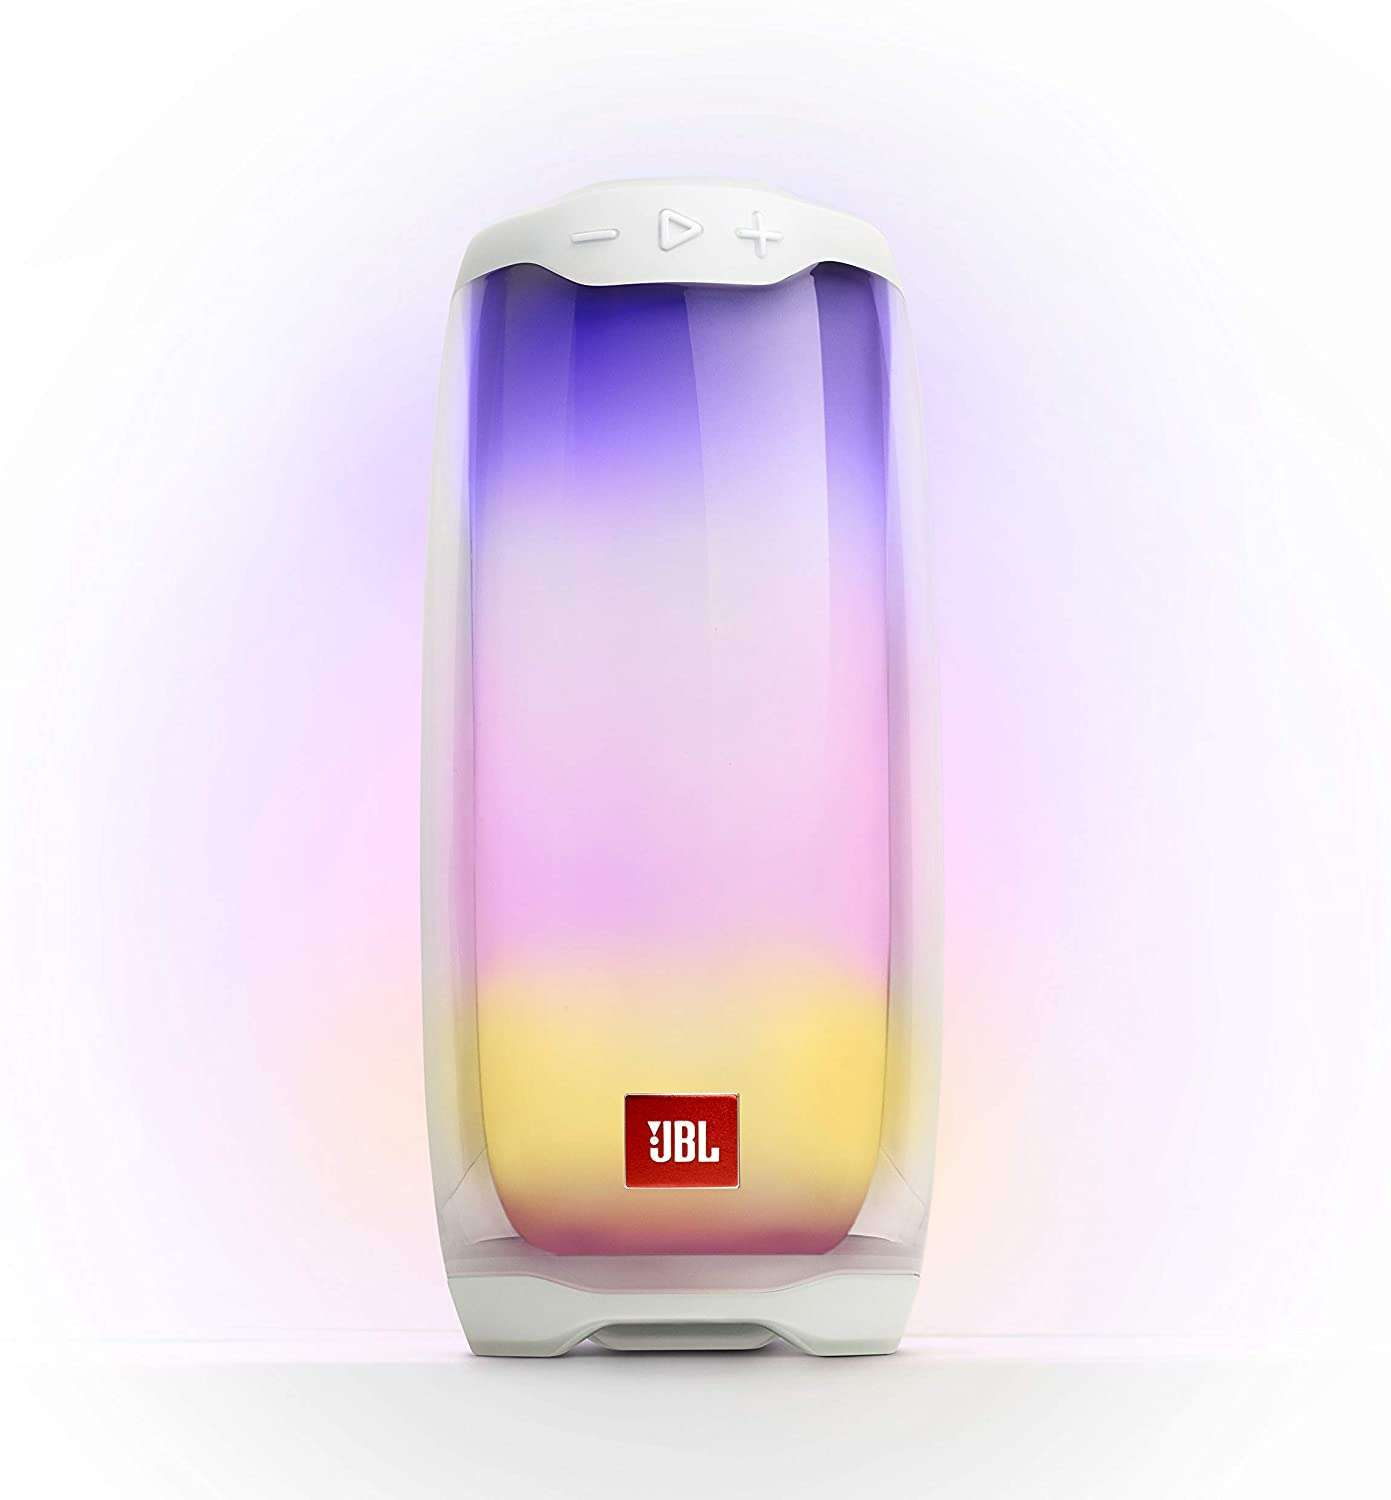 JBL Pulse 4 Waterproof Portable Bluetooth Speaker with Light Show - White